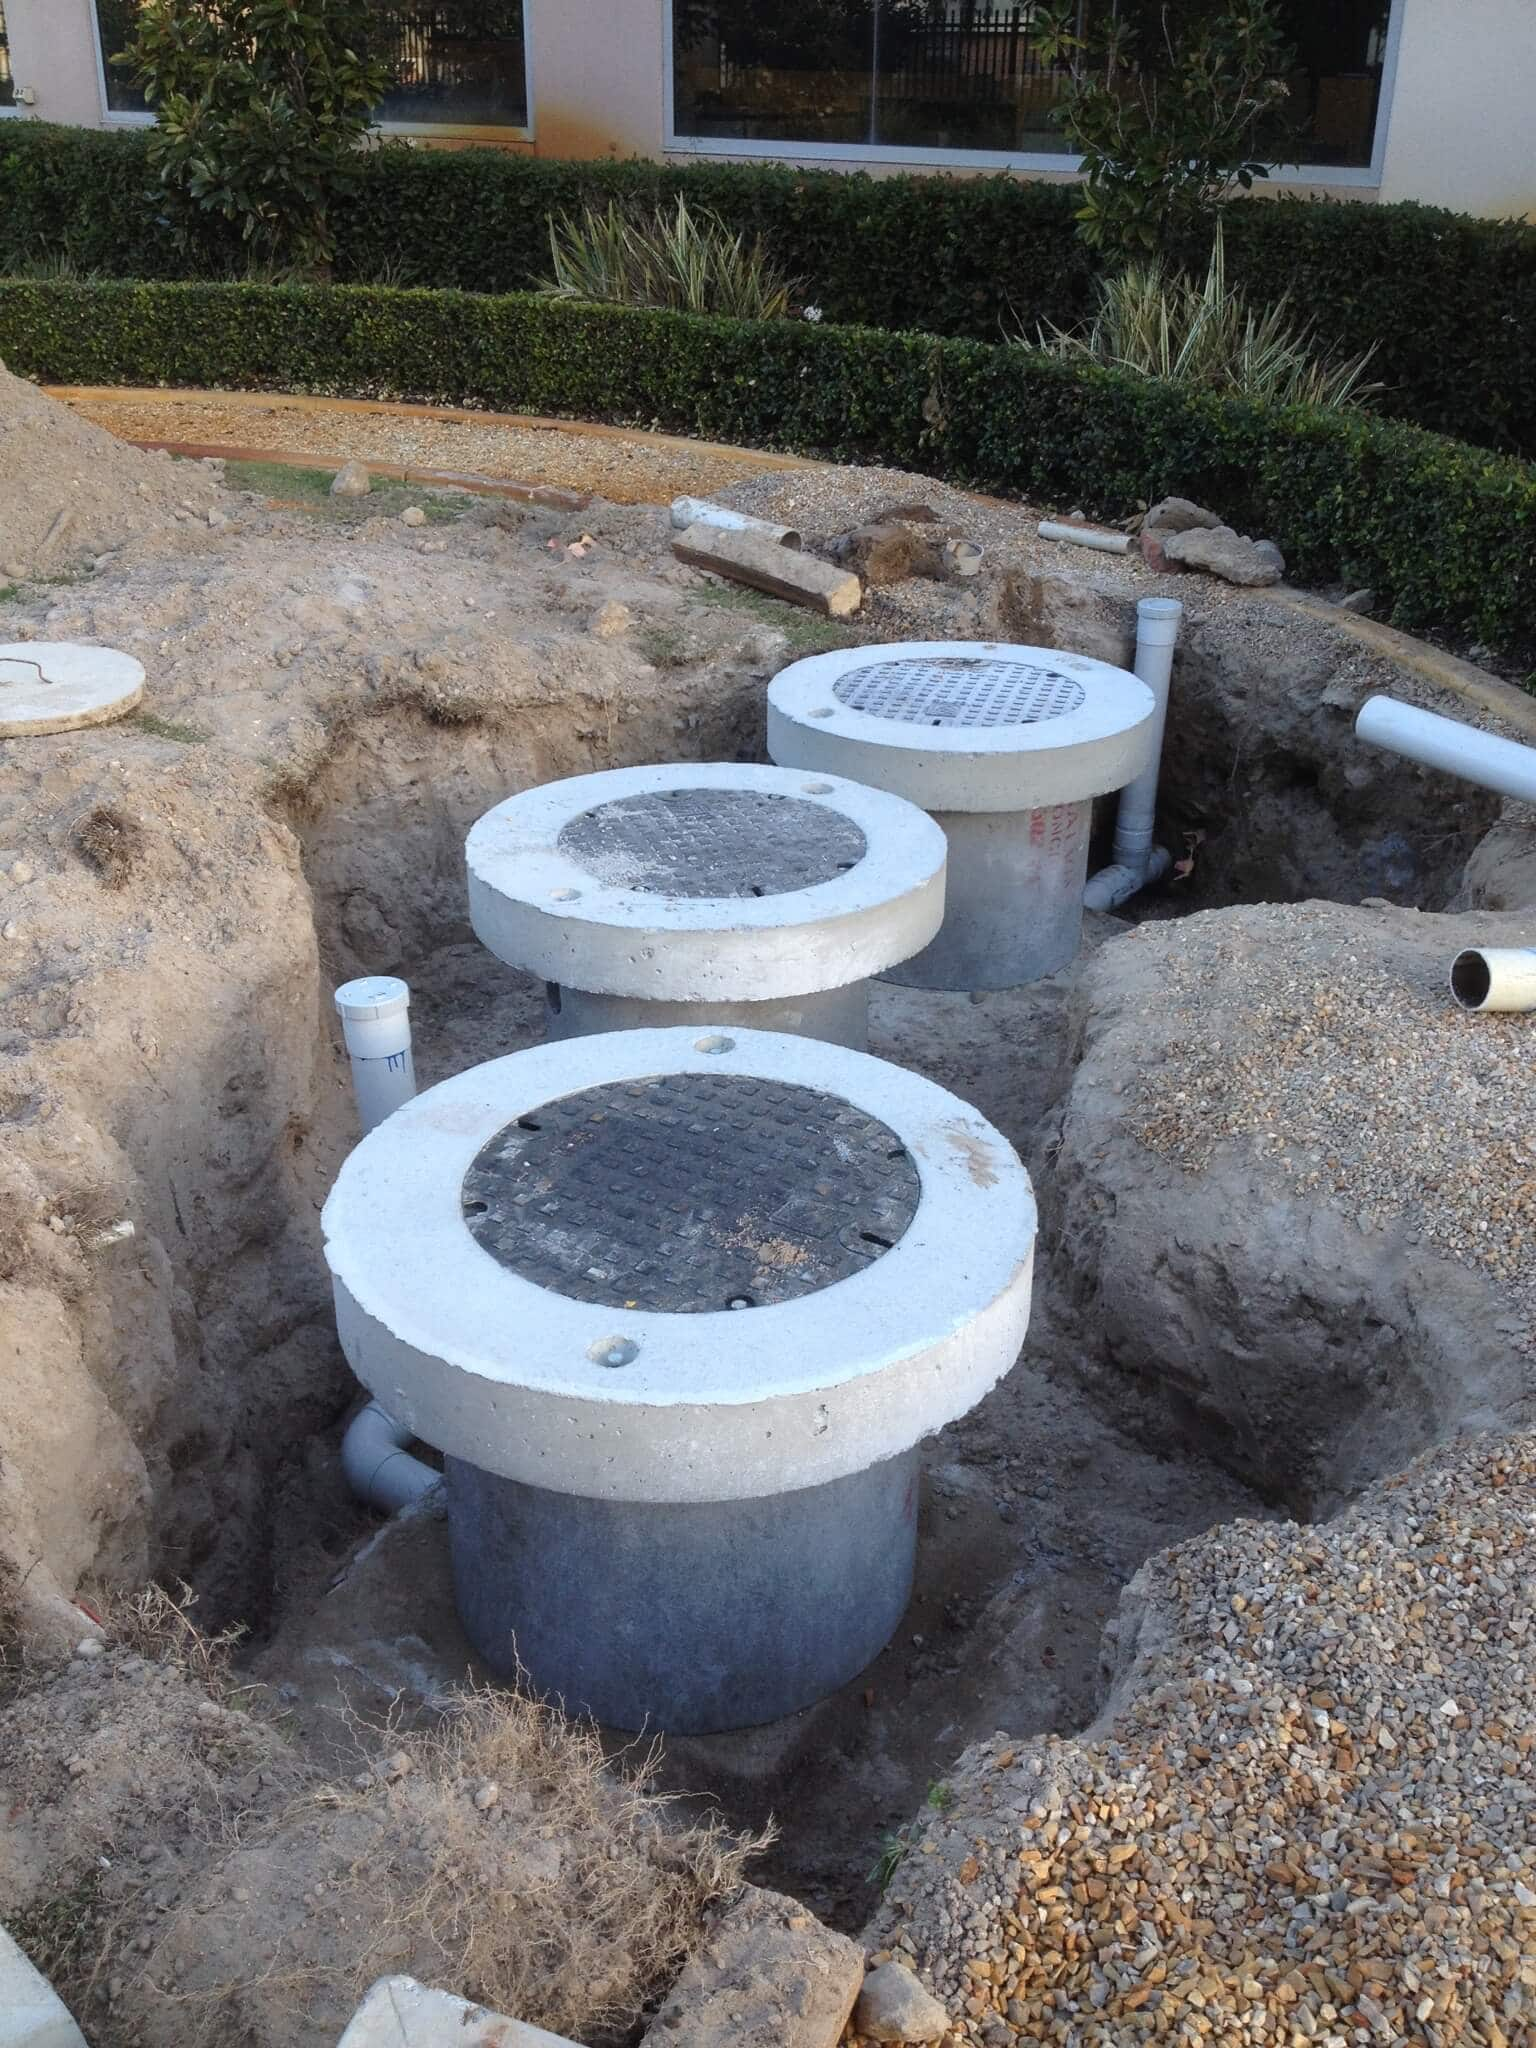 Everyday Plumbers Commercial Plumbing Services - Strata Plumbing Septics and Leach Drains 2149